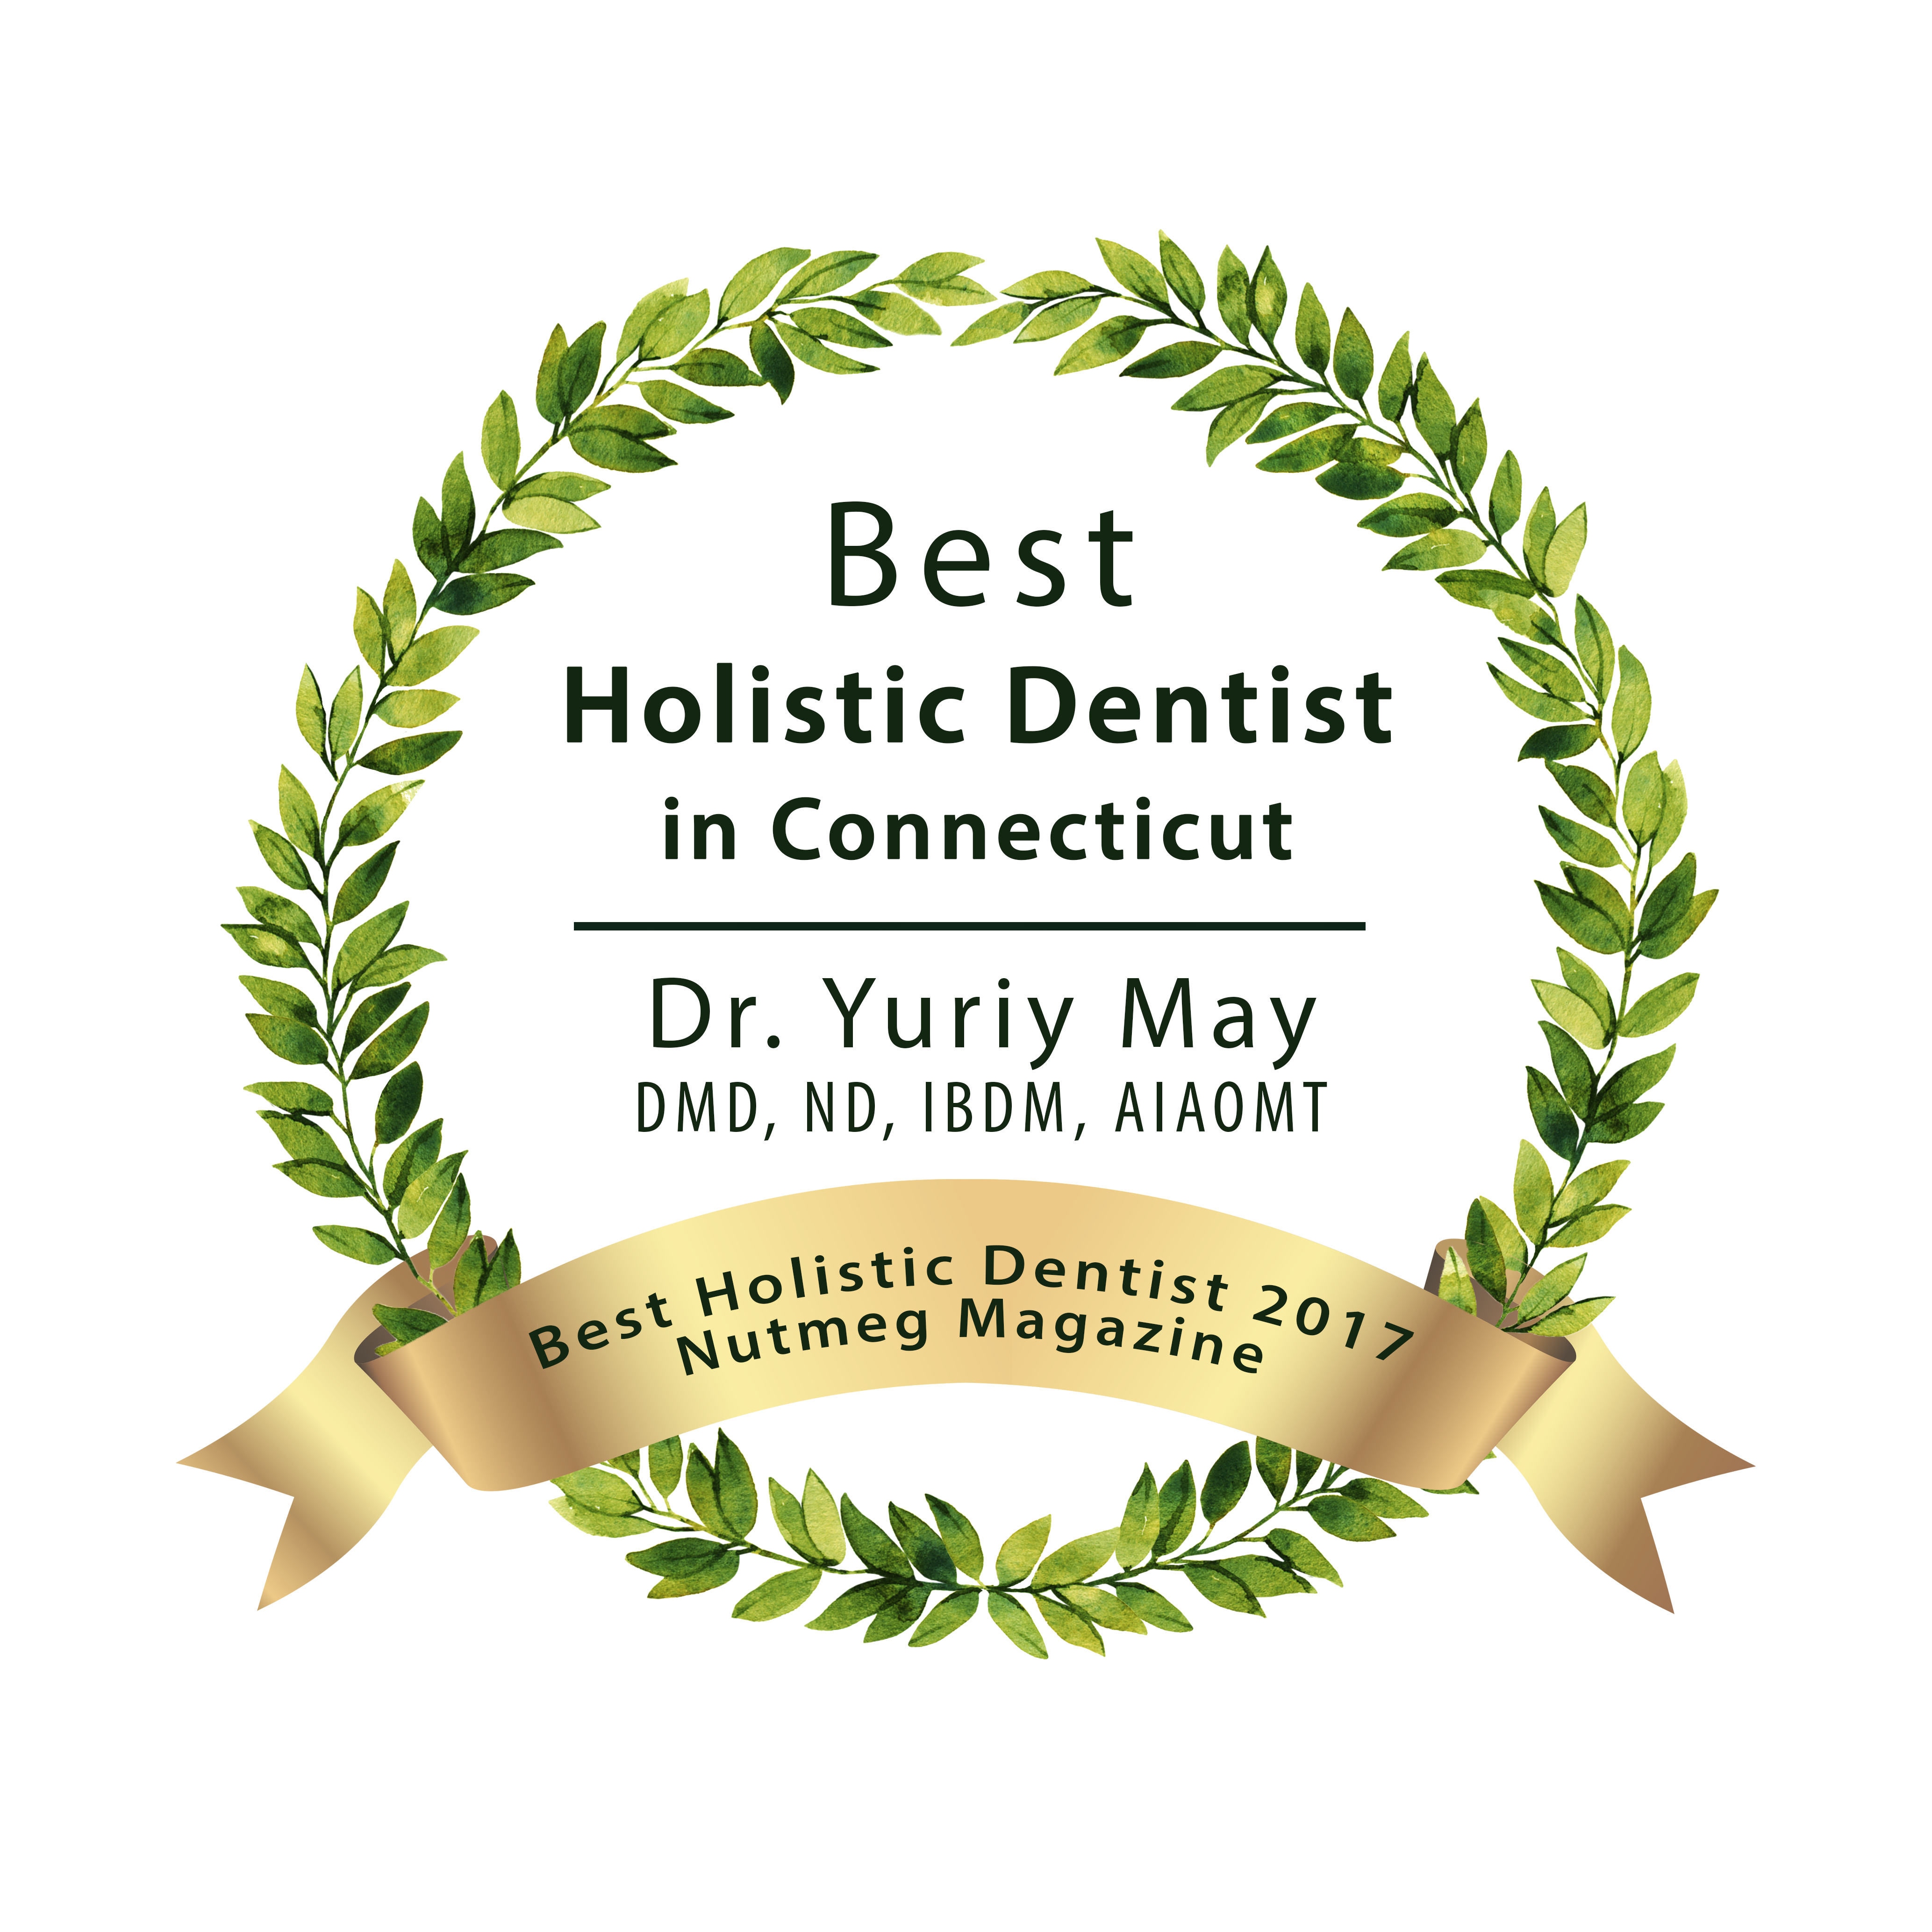 Best Holistic Dentist CT Dr. Yuriy May Connecticut Best Biological Dentist Natural Dentistry